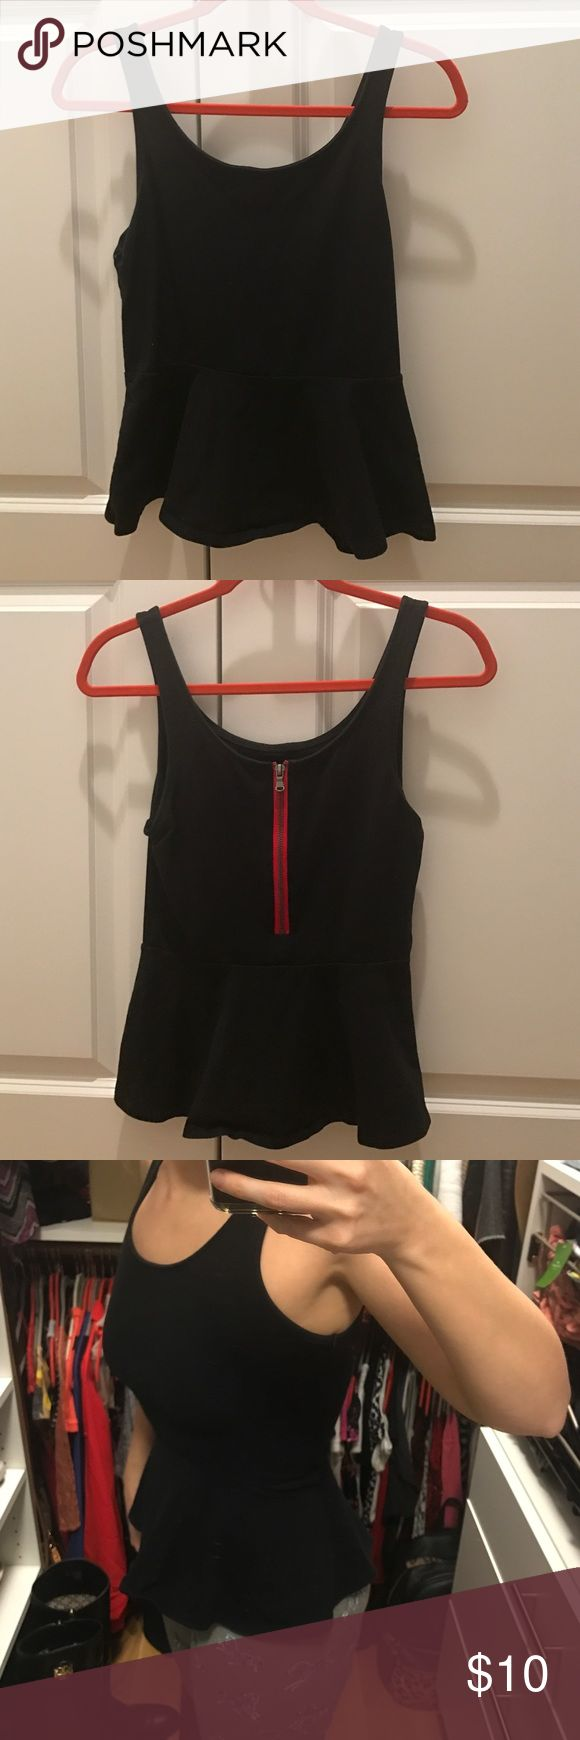 Express black tank top peplum small Worn only few times. Great condition. Black cotton express peplum tank with red zipper in back. Express Tops Tank Tops